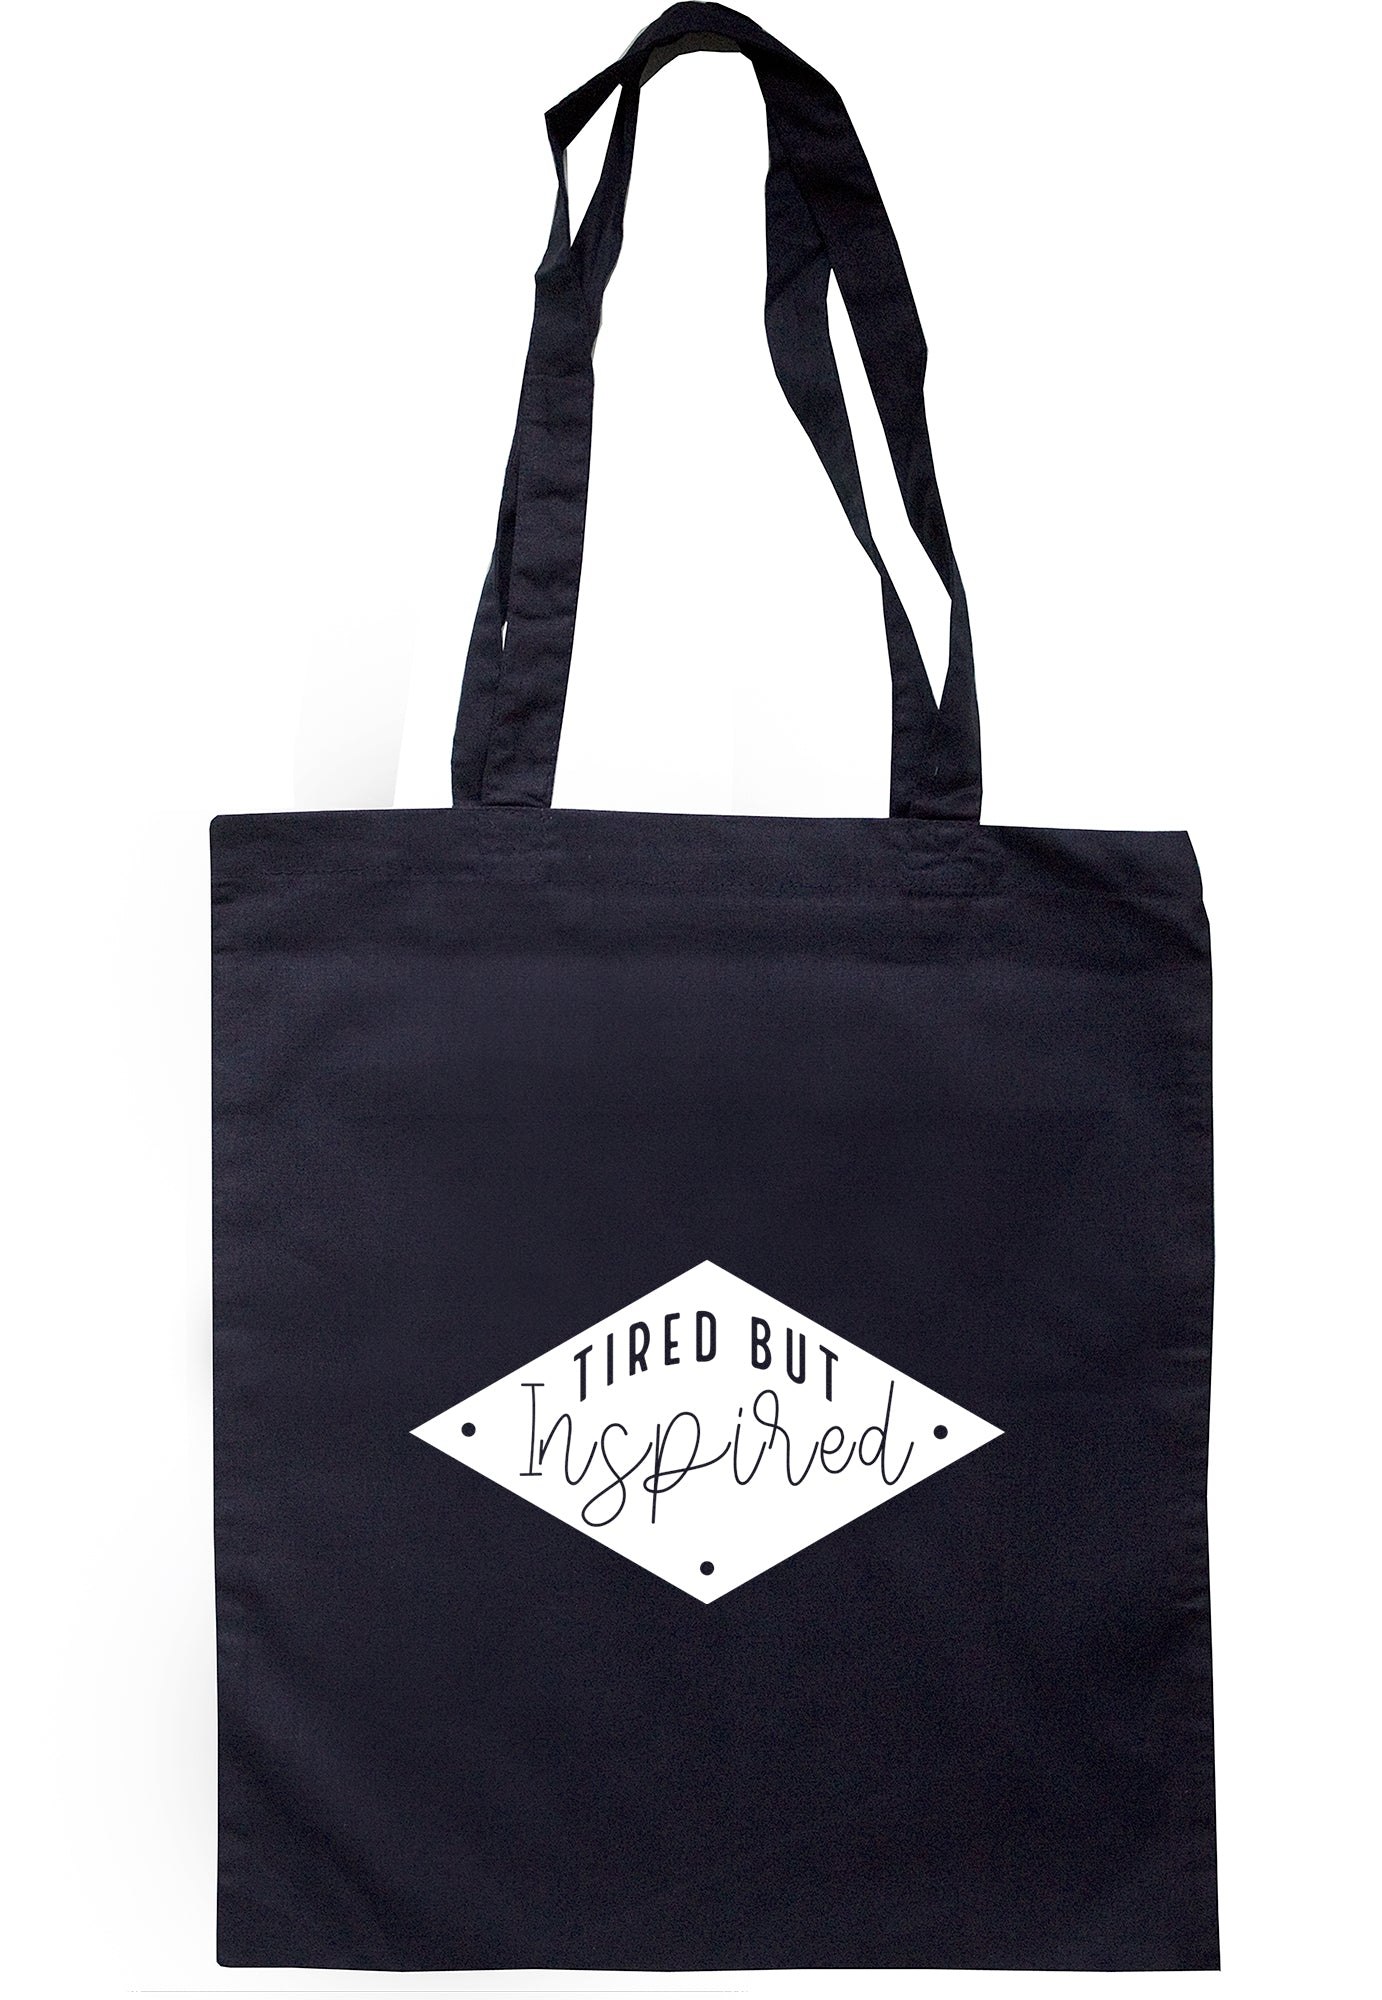 Tired But Inspired Tote Bag S1150 - Illustrated Identity Ltd.